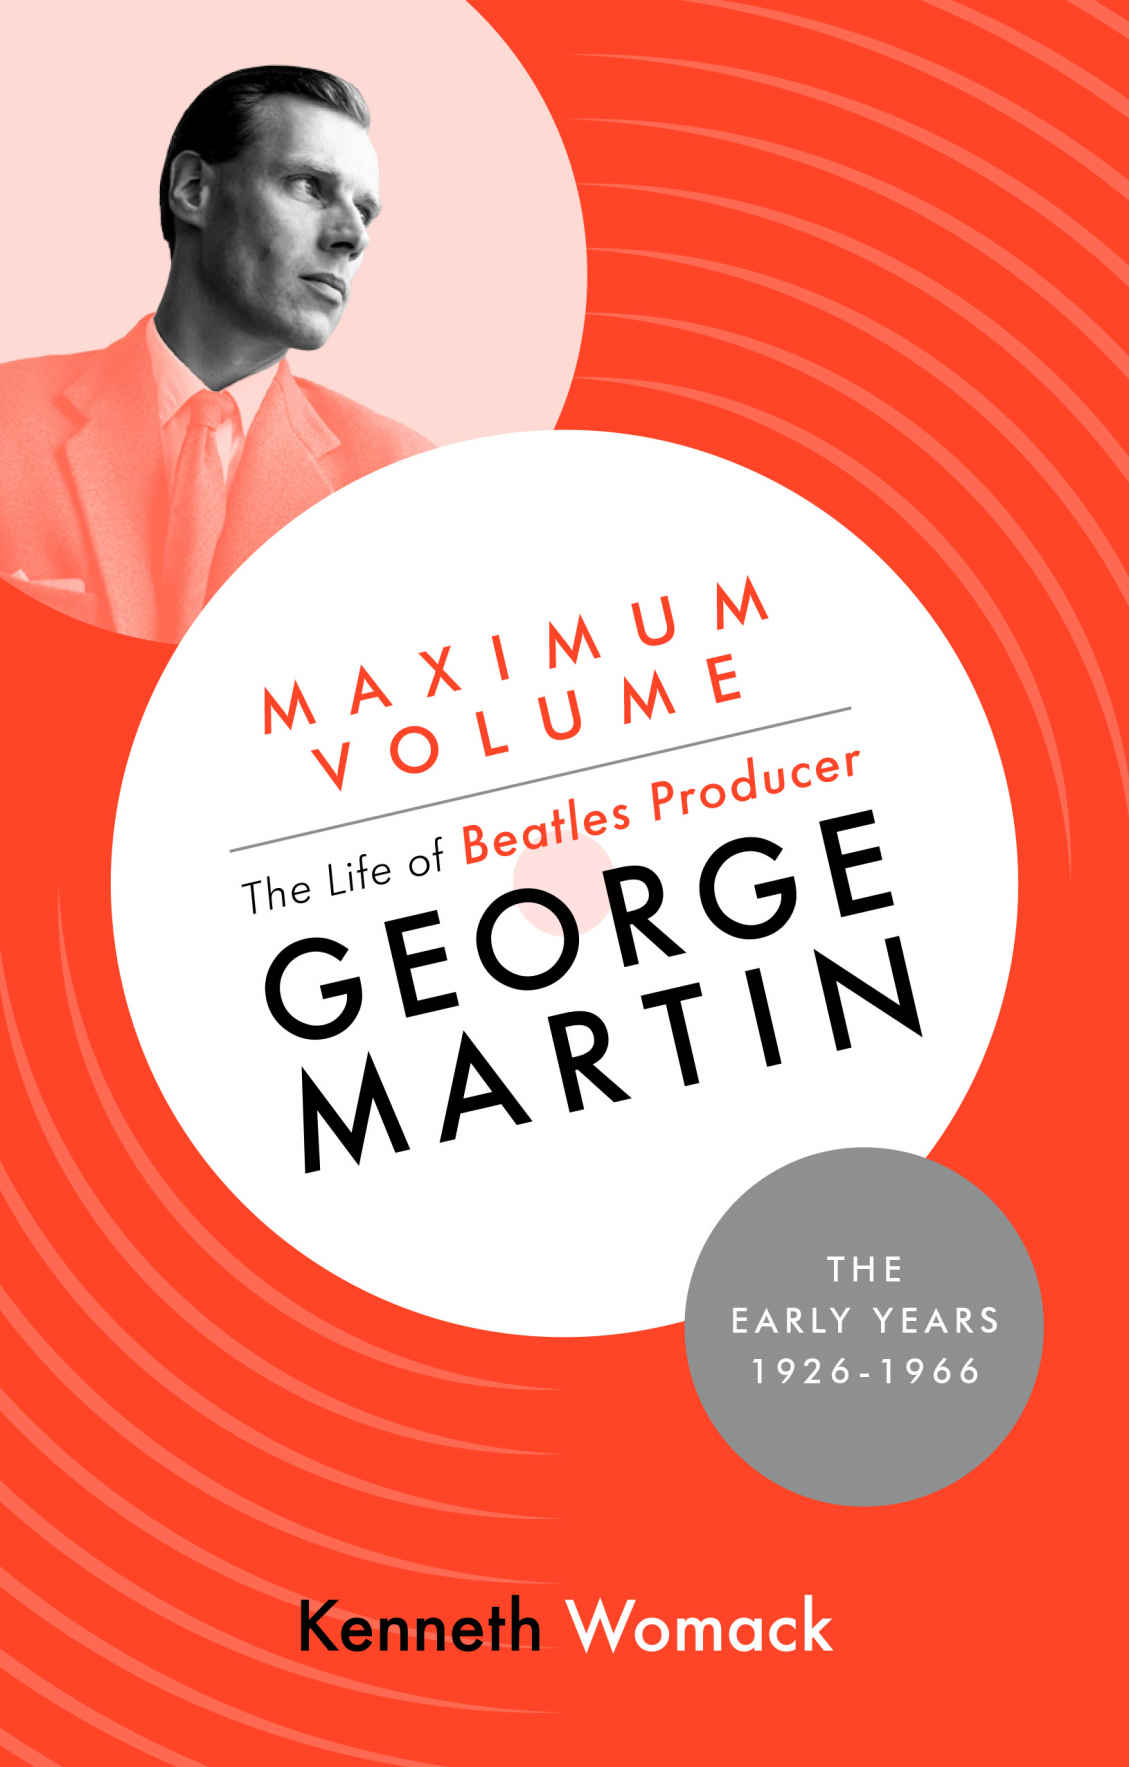 Maximum Volume: The Life of Beatles Producer George Martin, the Early Years, 1926-1966 Hardcover - Kenneth Womack